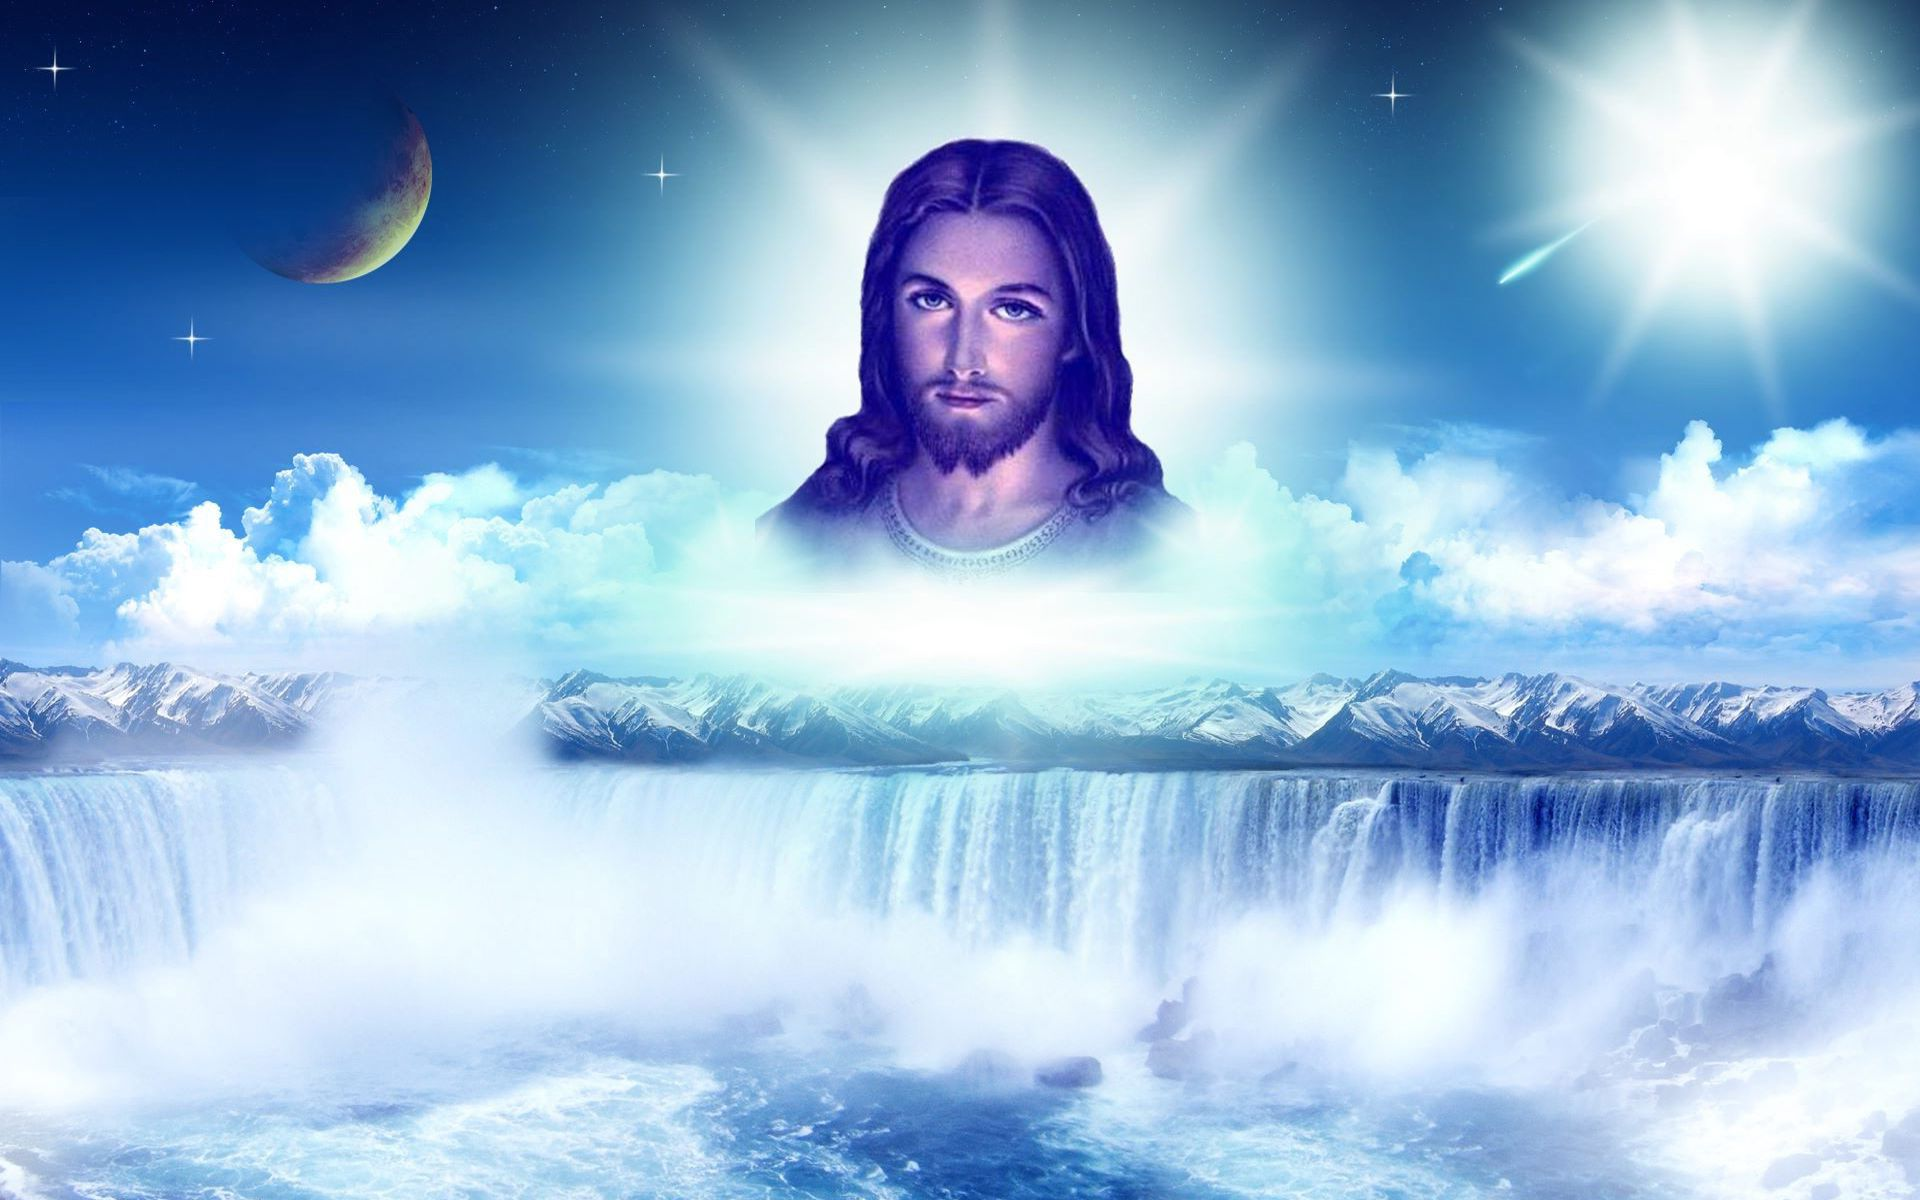 Jesus Christ 1 Cool Wallpaper Cool Wallpaper Collection Jesus Wallpaper Jesus Pictures Jesus Images